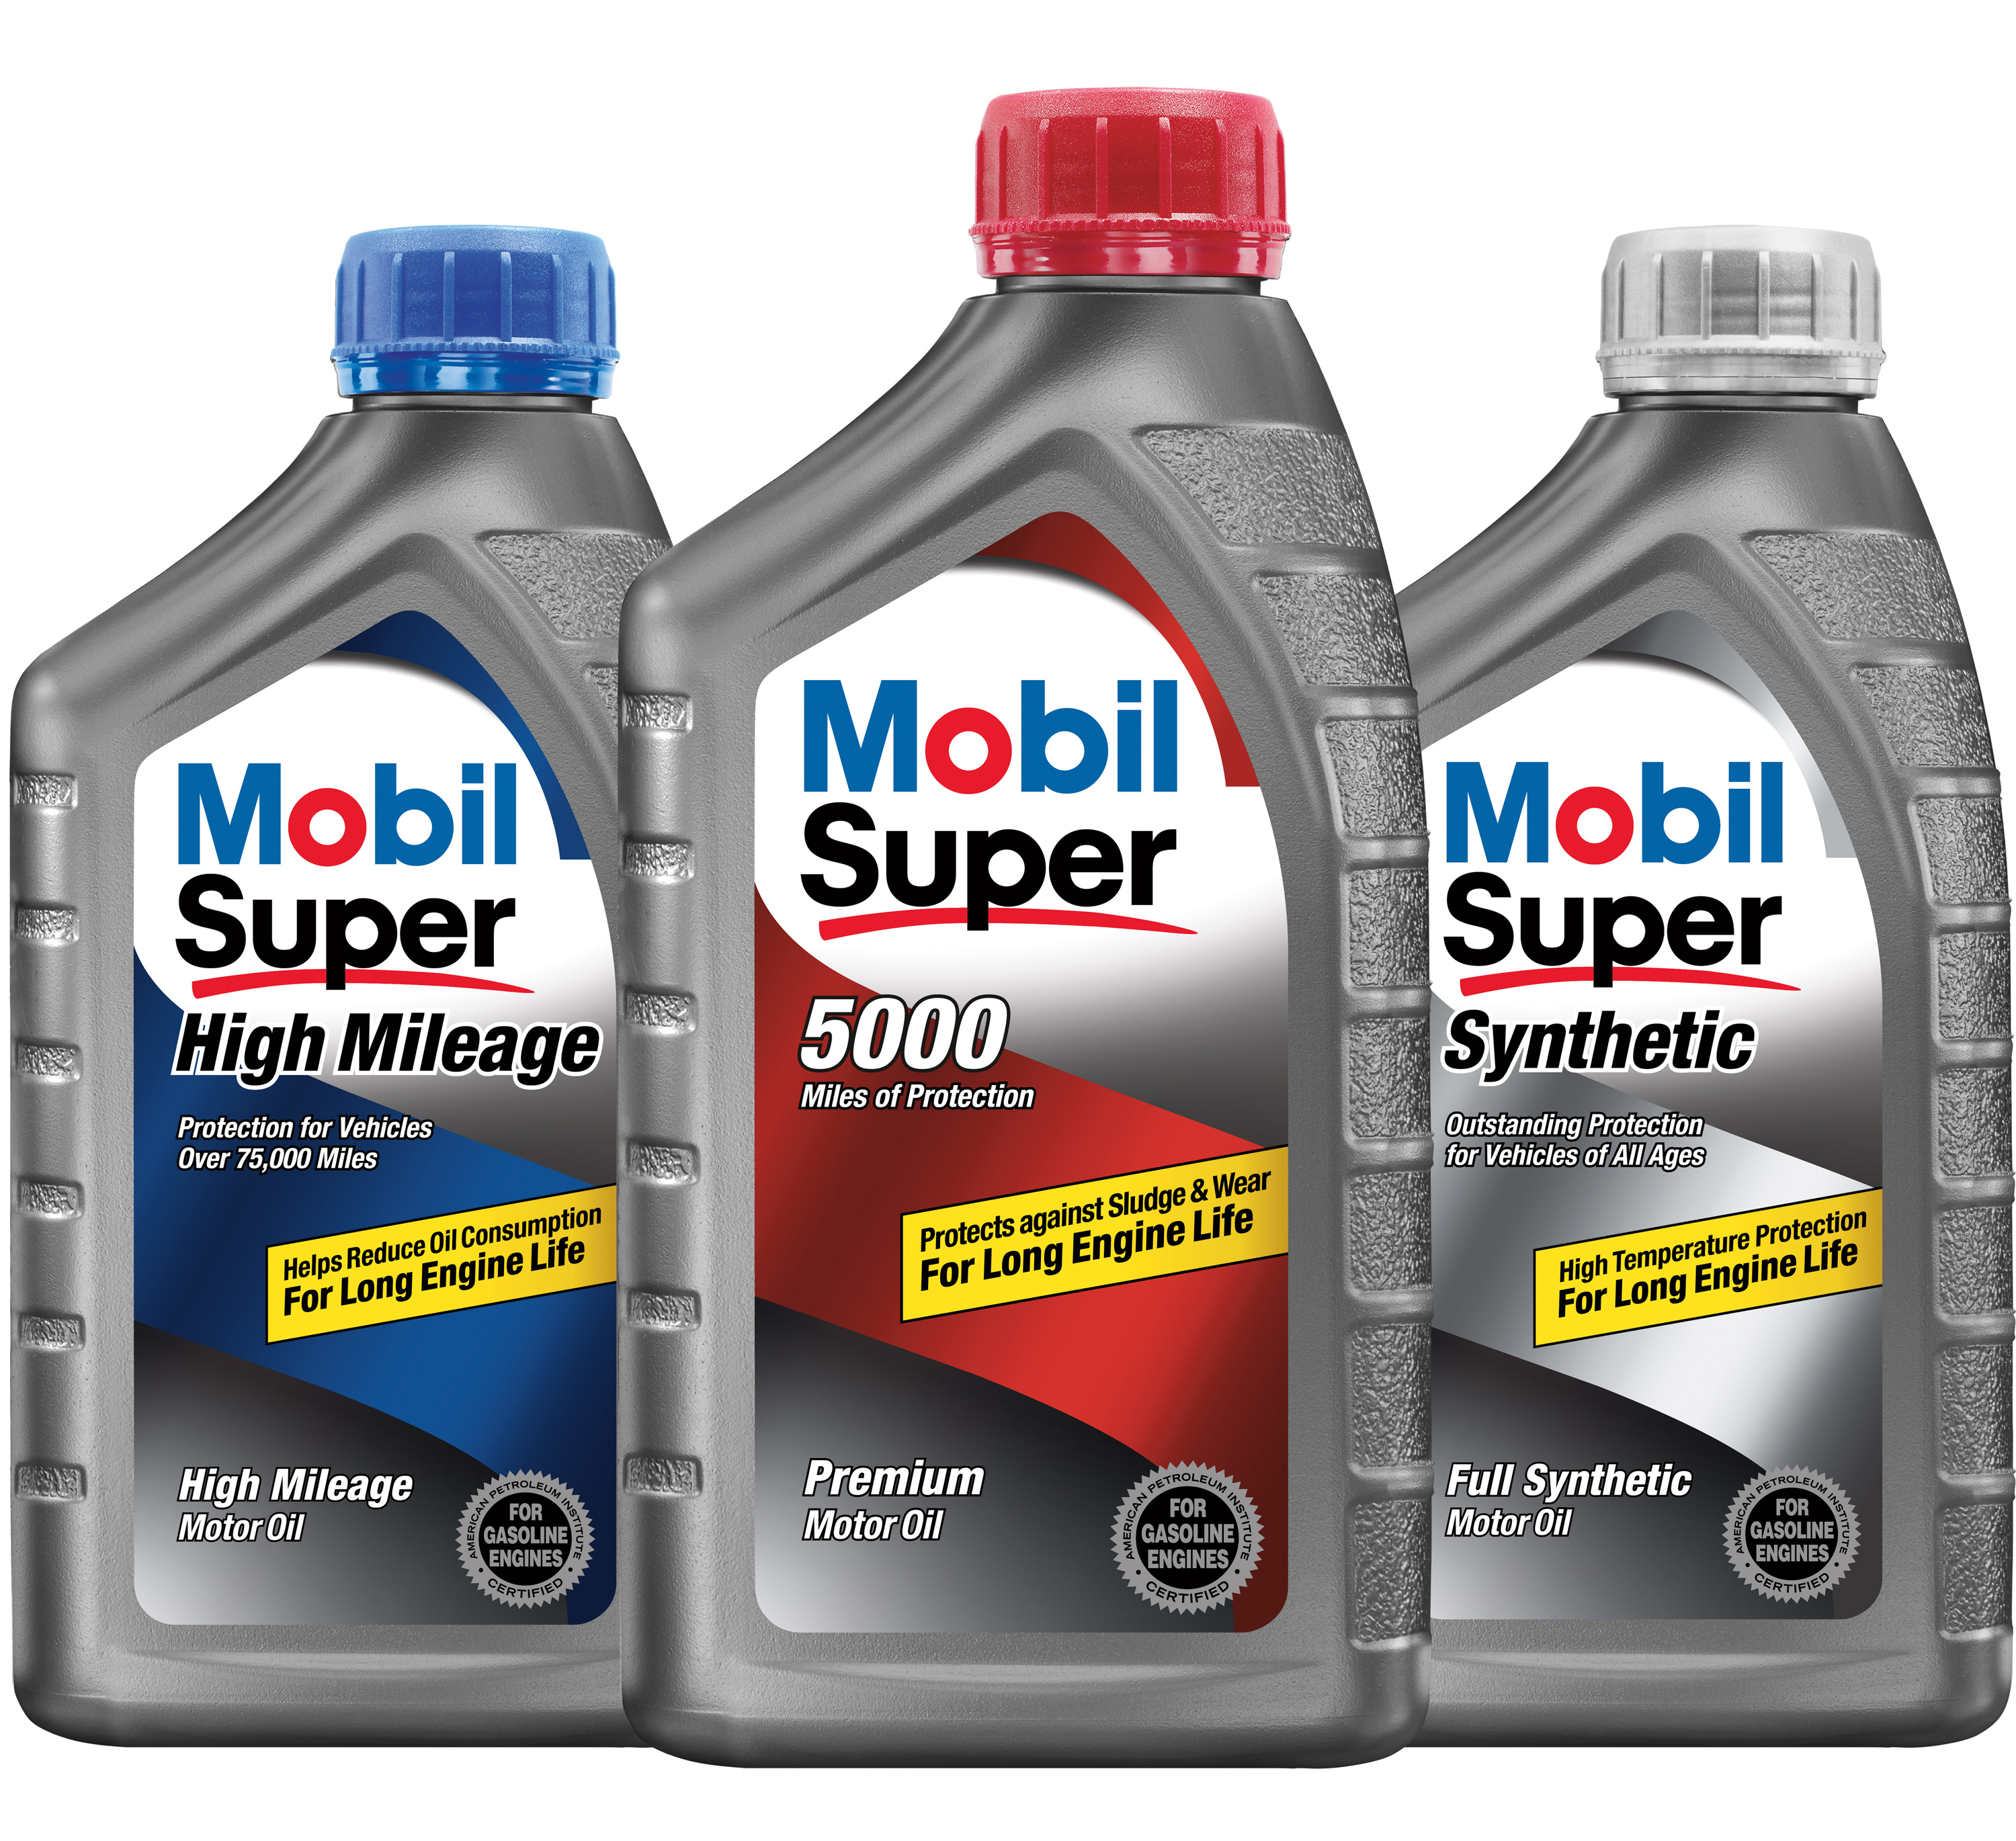 ExxonMobil Launches New Mobil Super Line with Baseball Legends